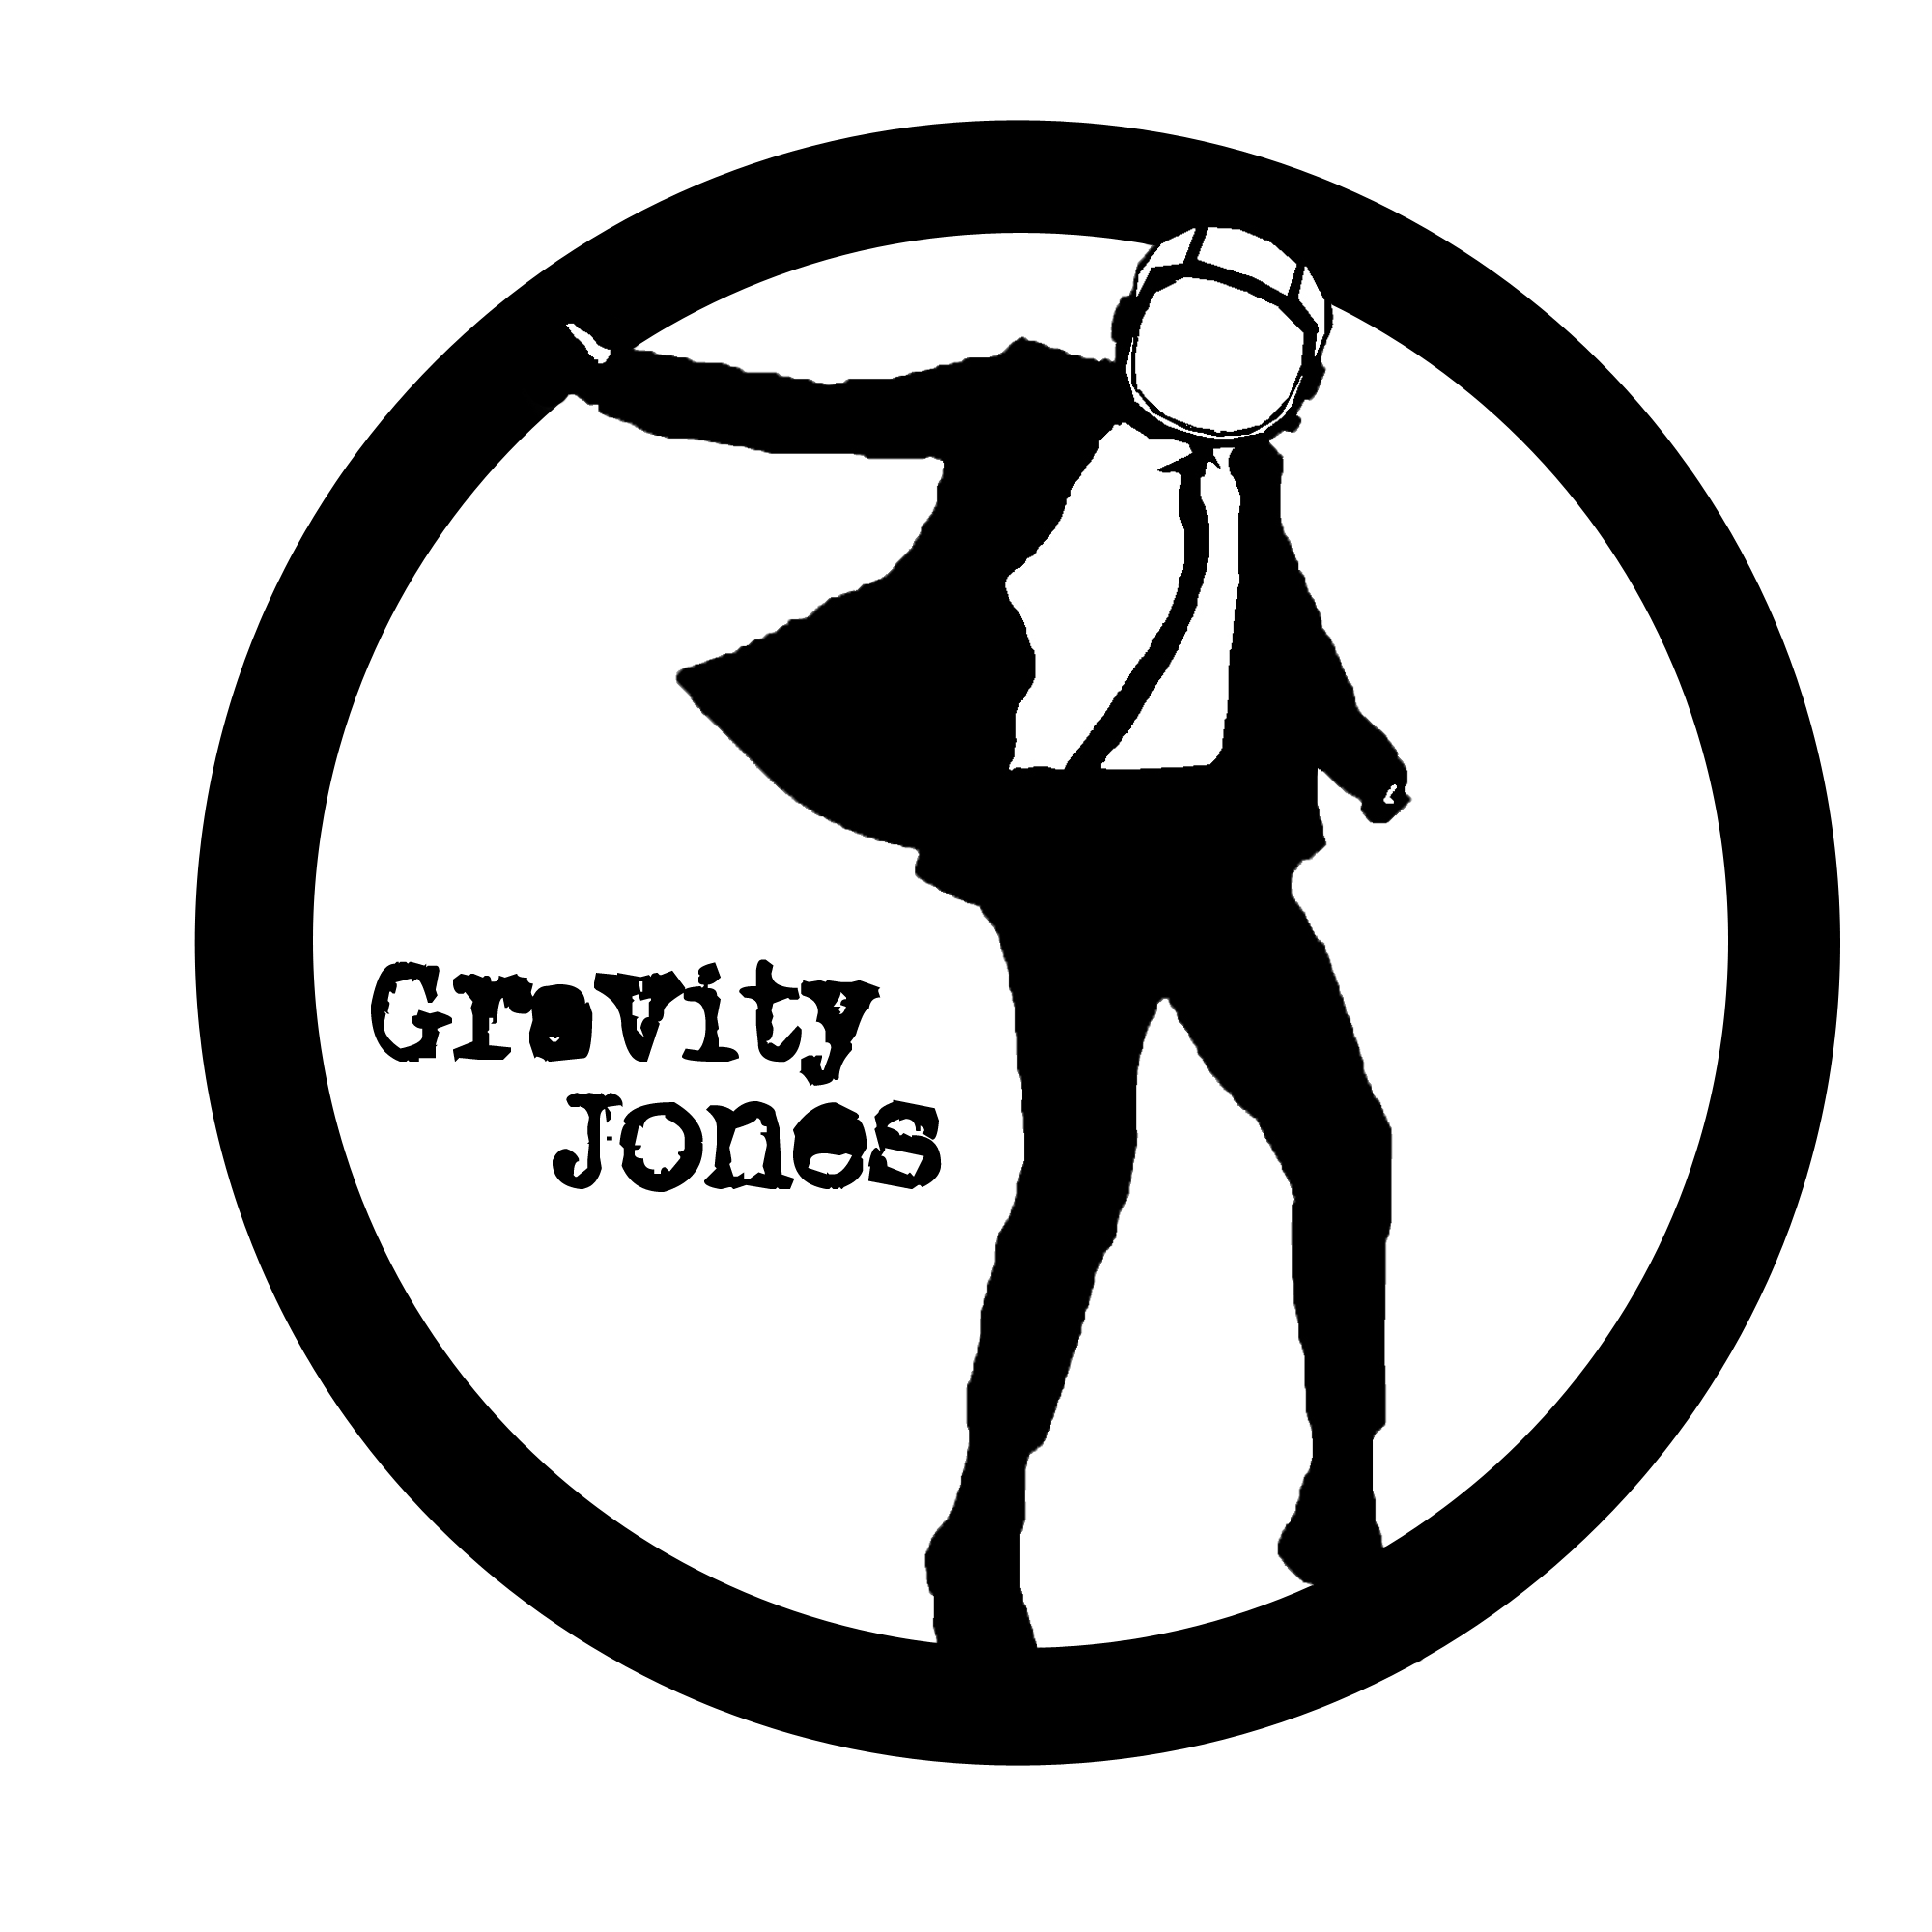 Gravity Jones Official D